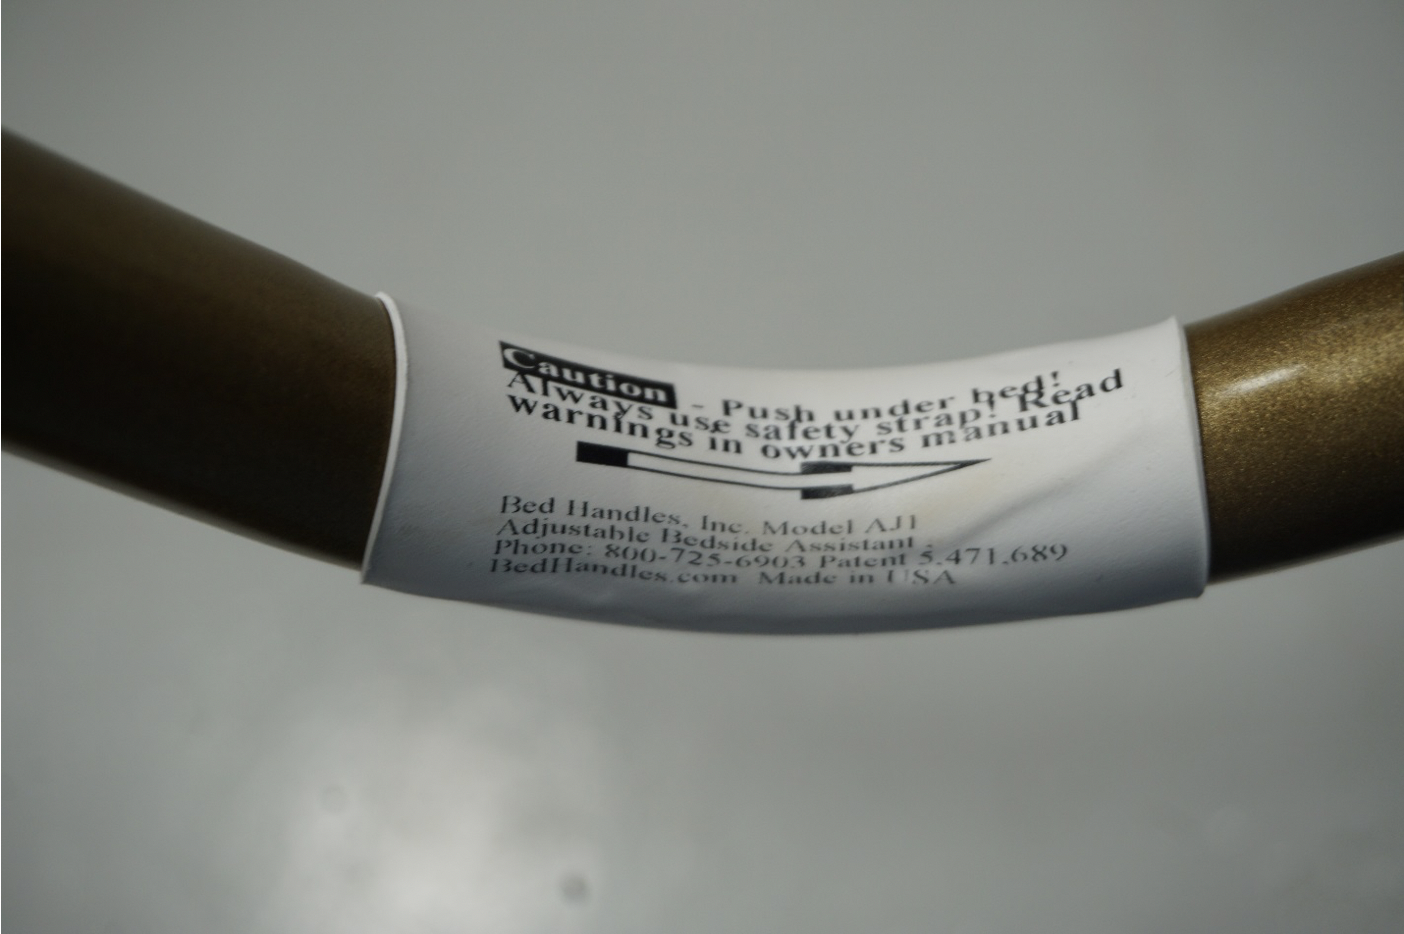 Sticker where model number can be found